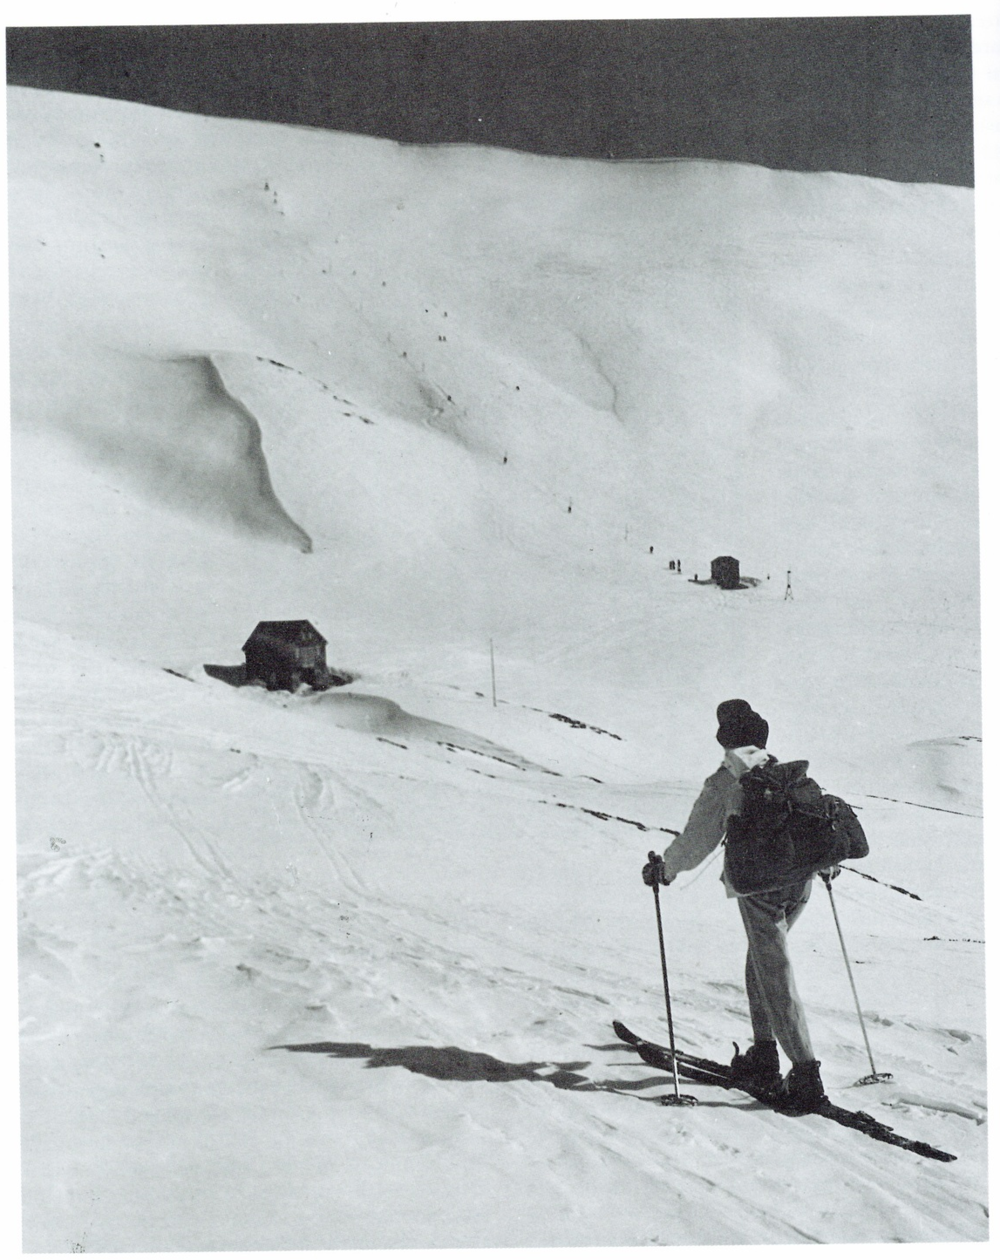 Two of the Ski Tourers Association's Main Range developments: Kunama Lodge and the Northcote Tow House.                                                                                                Photo: Baglin, published in Rick Walkom. Skiing off the roof: the kosciusko Chalet and it's place in the history of the Australian snowfields. [1st ed.], Arlberg Press, 1991.